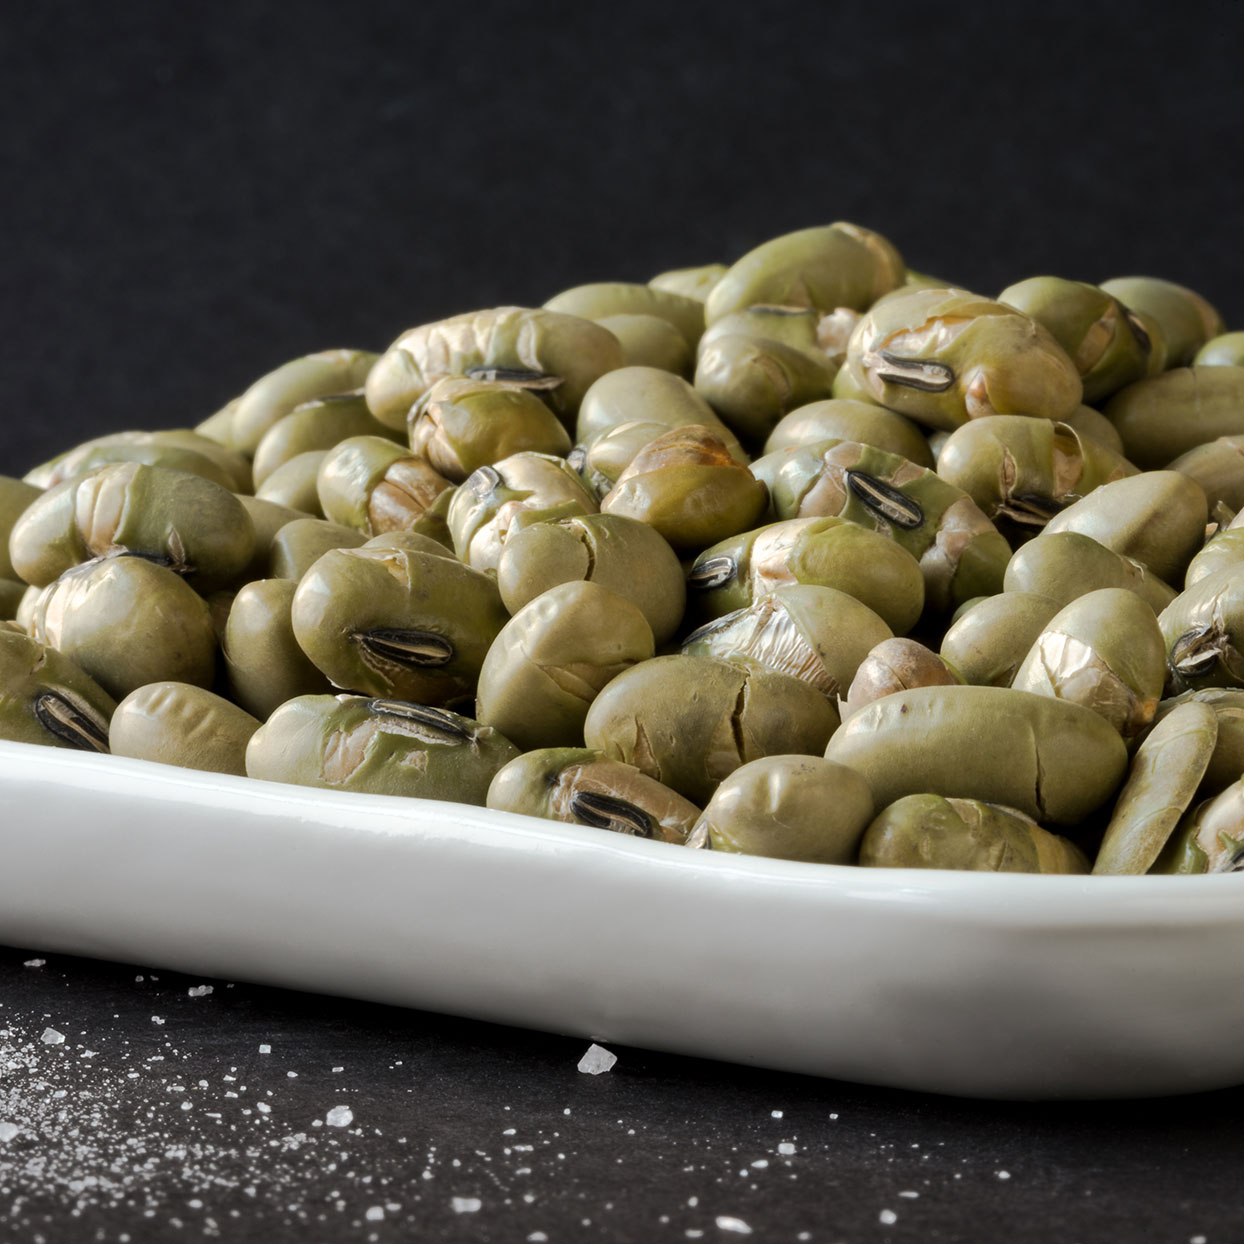 The Lowdown: (1/2 cup in shell with a dash of coarse salt) 90 calories, 4g fat, 168mg sodiumWhole green soybeans eaten out of the pod are a great source of cholesterol-lowering soy protein. A half-cup serving provides 3 grams of fiber and 7 1/2 grams of protein, plus a little calcium, iron, and vitamin C.